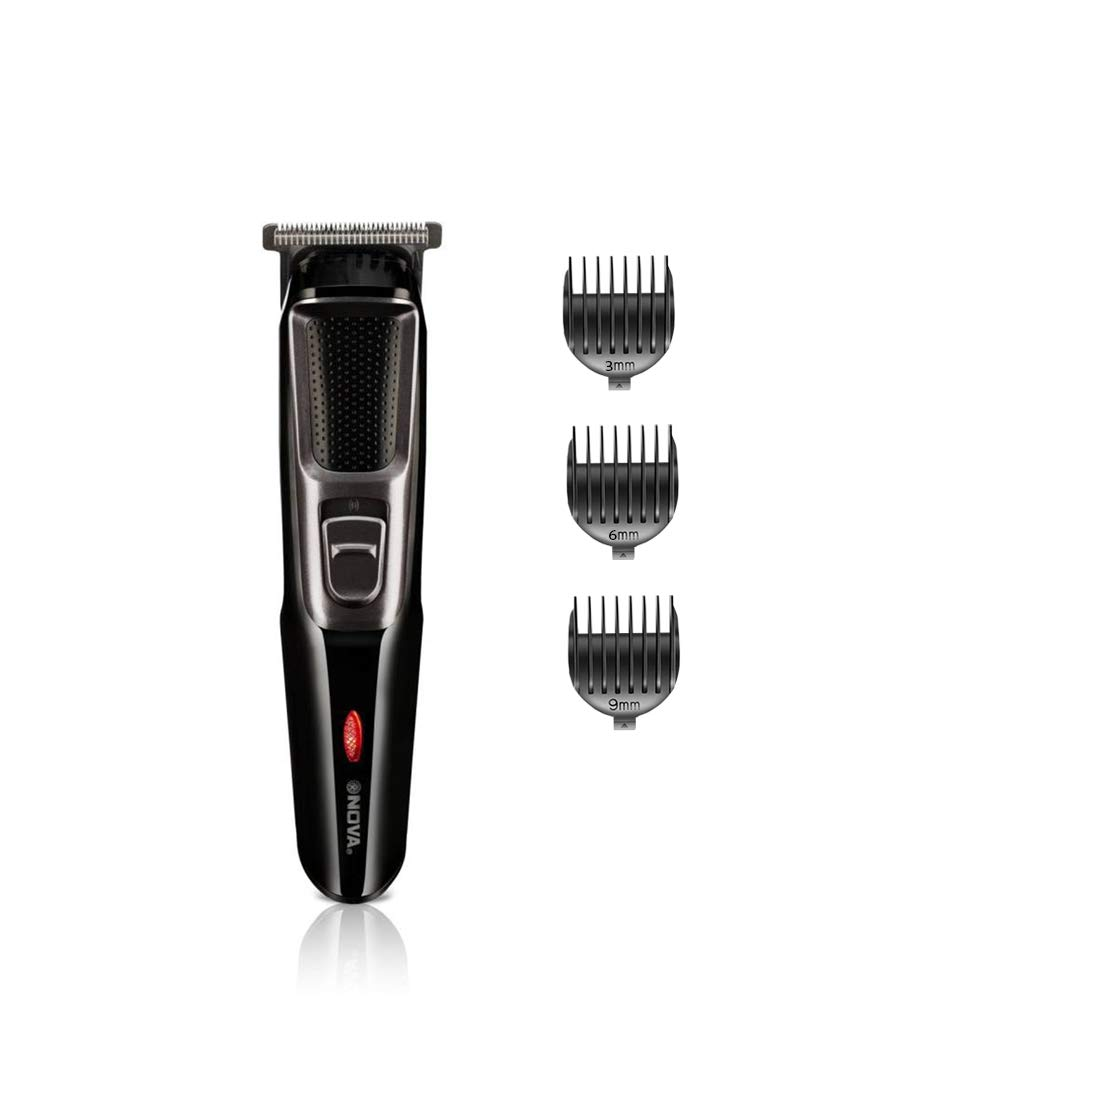 Nova NHT 1076 Cordless Trimmer for Men (Black)